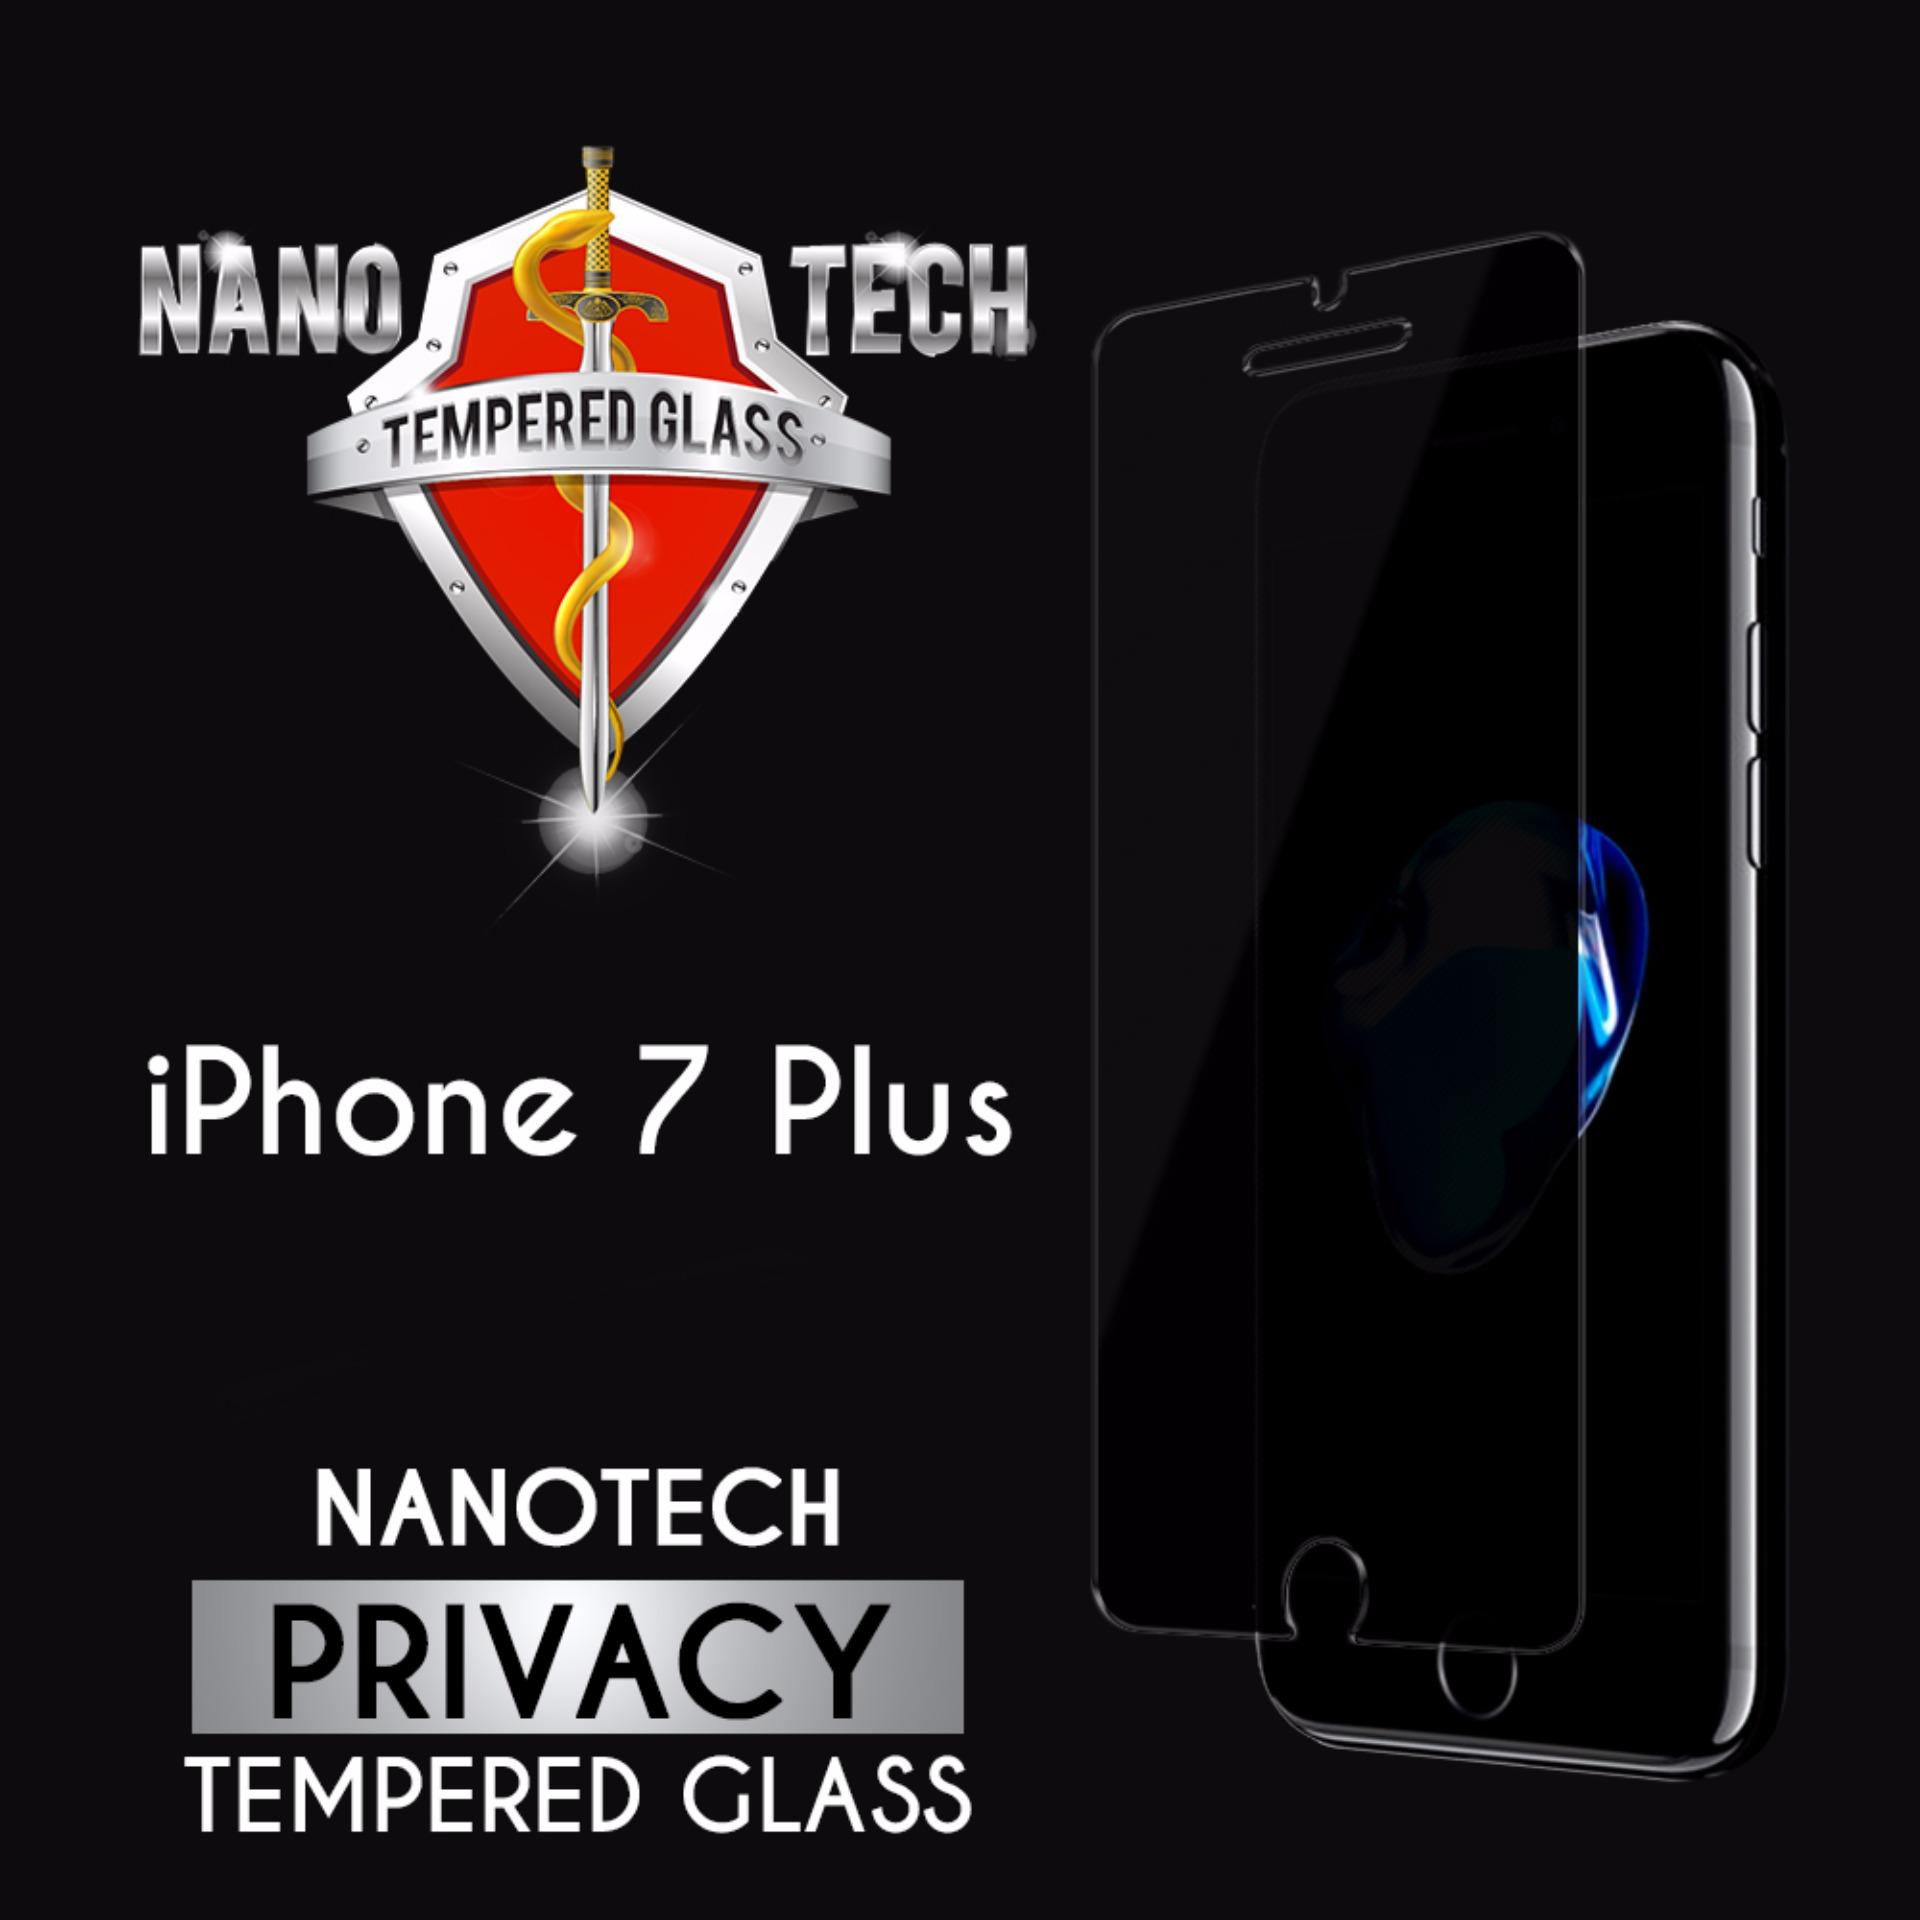 Nanotech iPhone 7 Plus/8 Plus Privacy Tempered Glass Screen Protector [Non-full Coverage][2-Way Privacy]